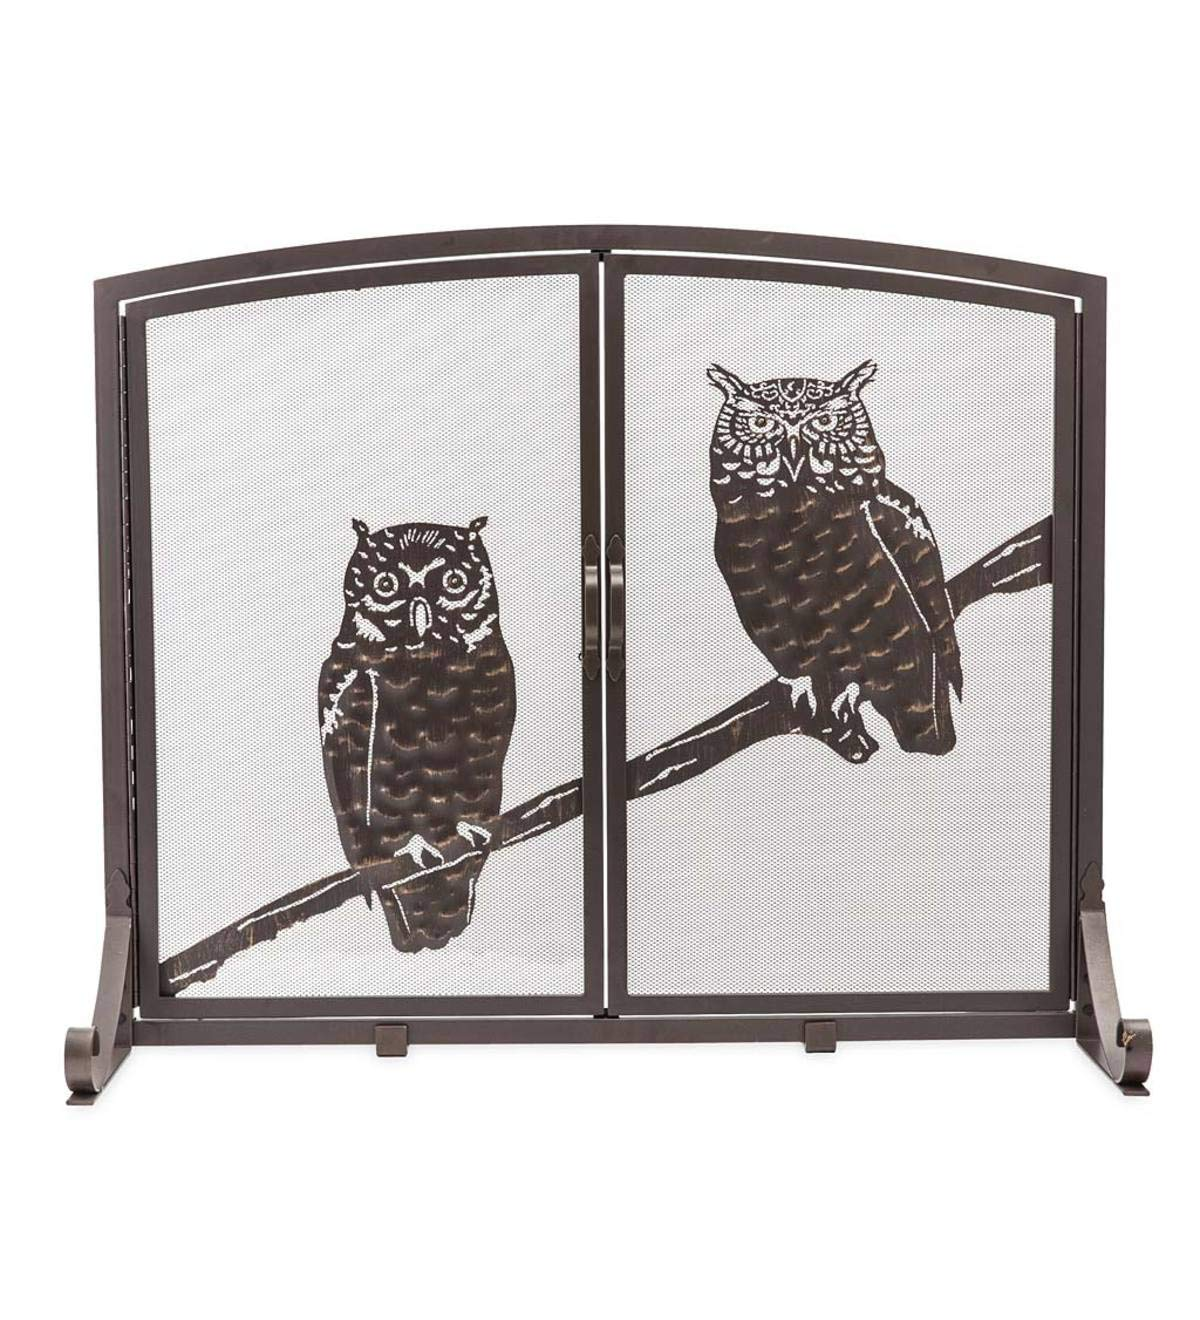 Plow & Hearth Small Owls Fireplace Screen with Two Doors - 38''W x 11.5''D x 31''H